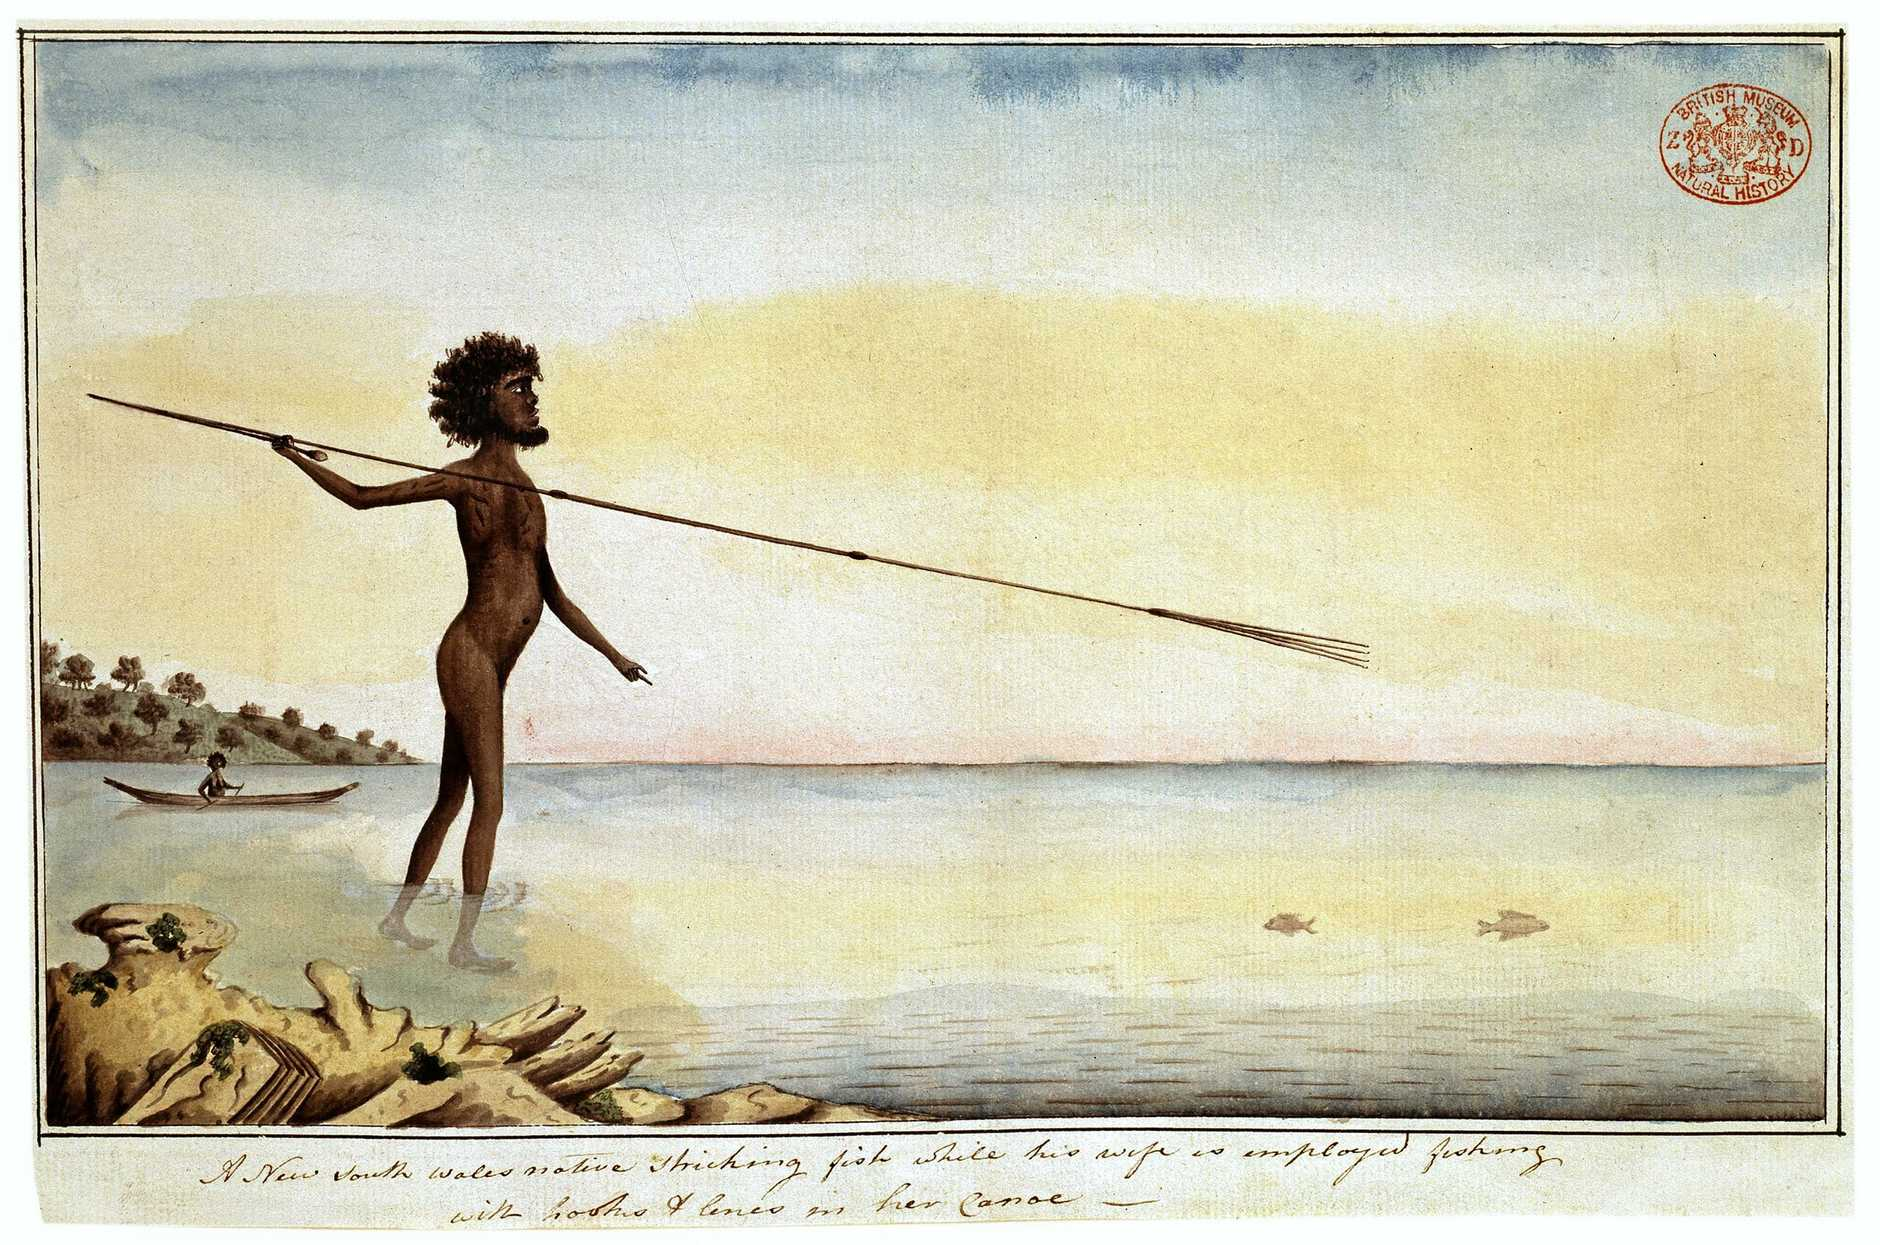 Drawing 29 from the Watling Collection titled 'A New South Wales native sticking fish while his wife is employed fishing with hooks and lines in her canoe' by Port Jackson Painter, 1788-1797.